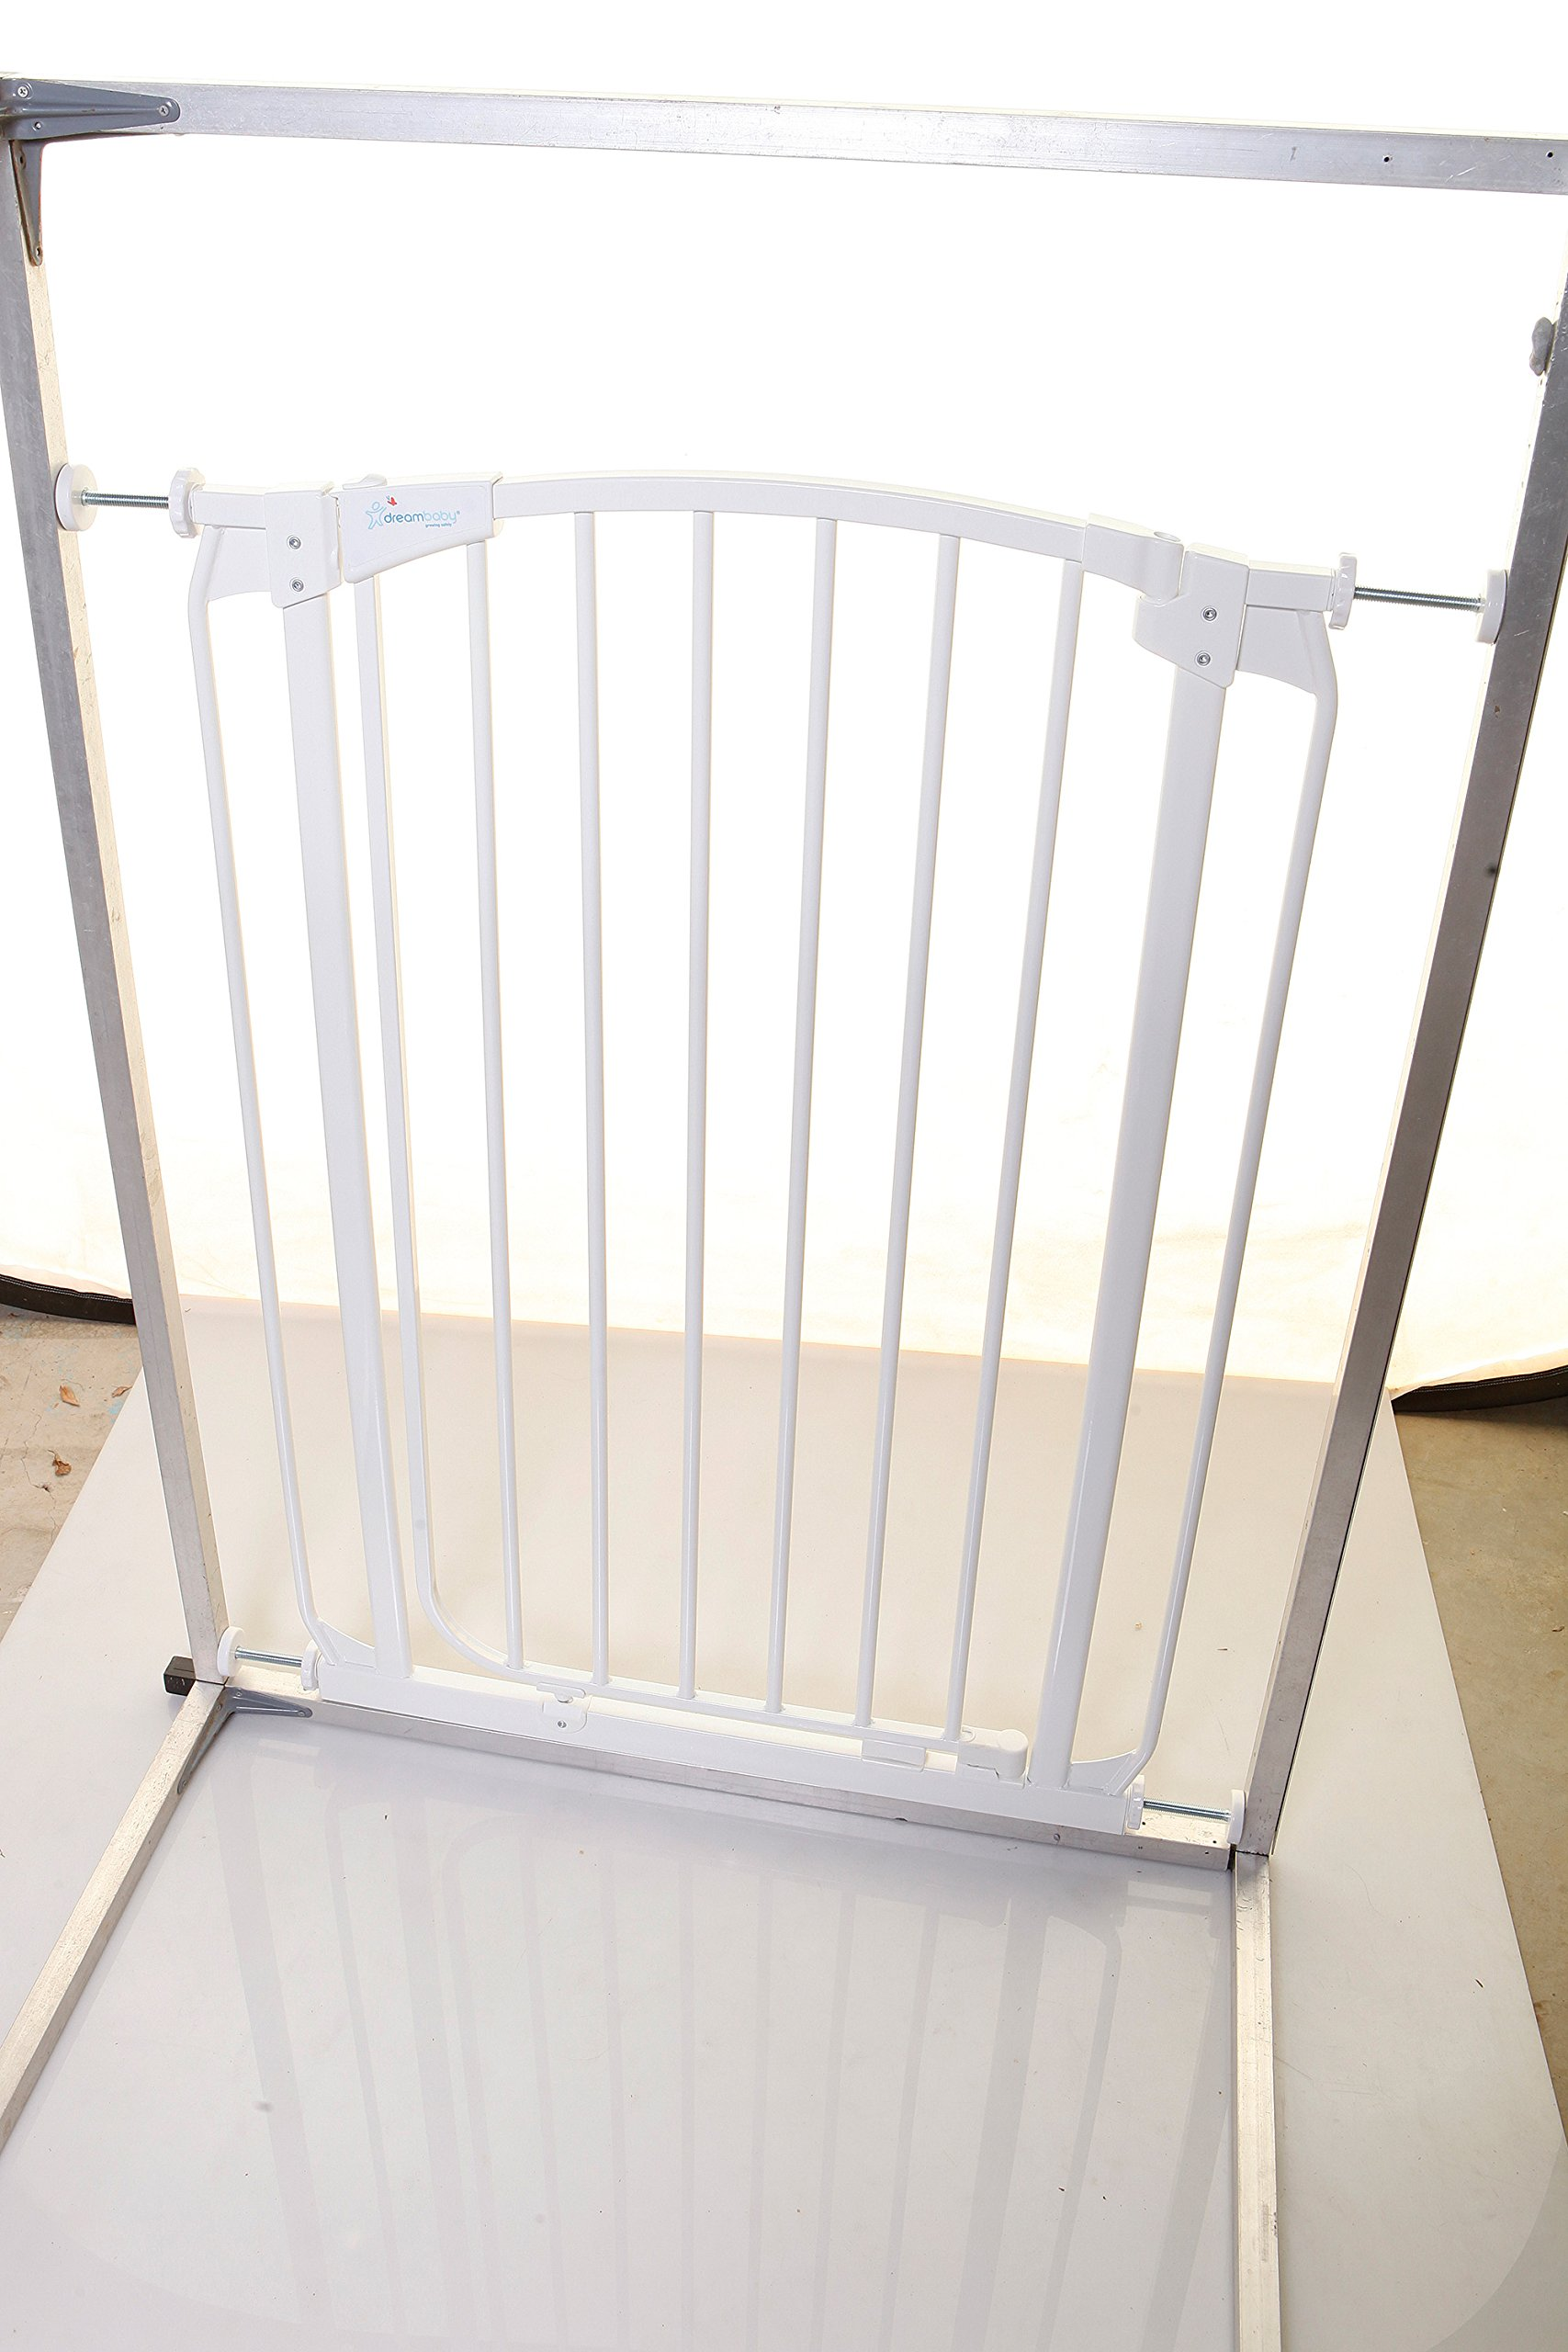 Stork Tall Safety Gate (Fits 71-80 cm) White  Stork